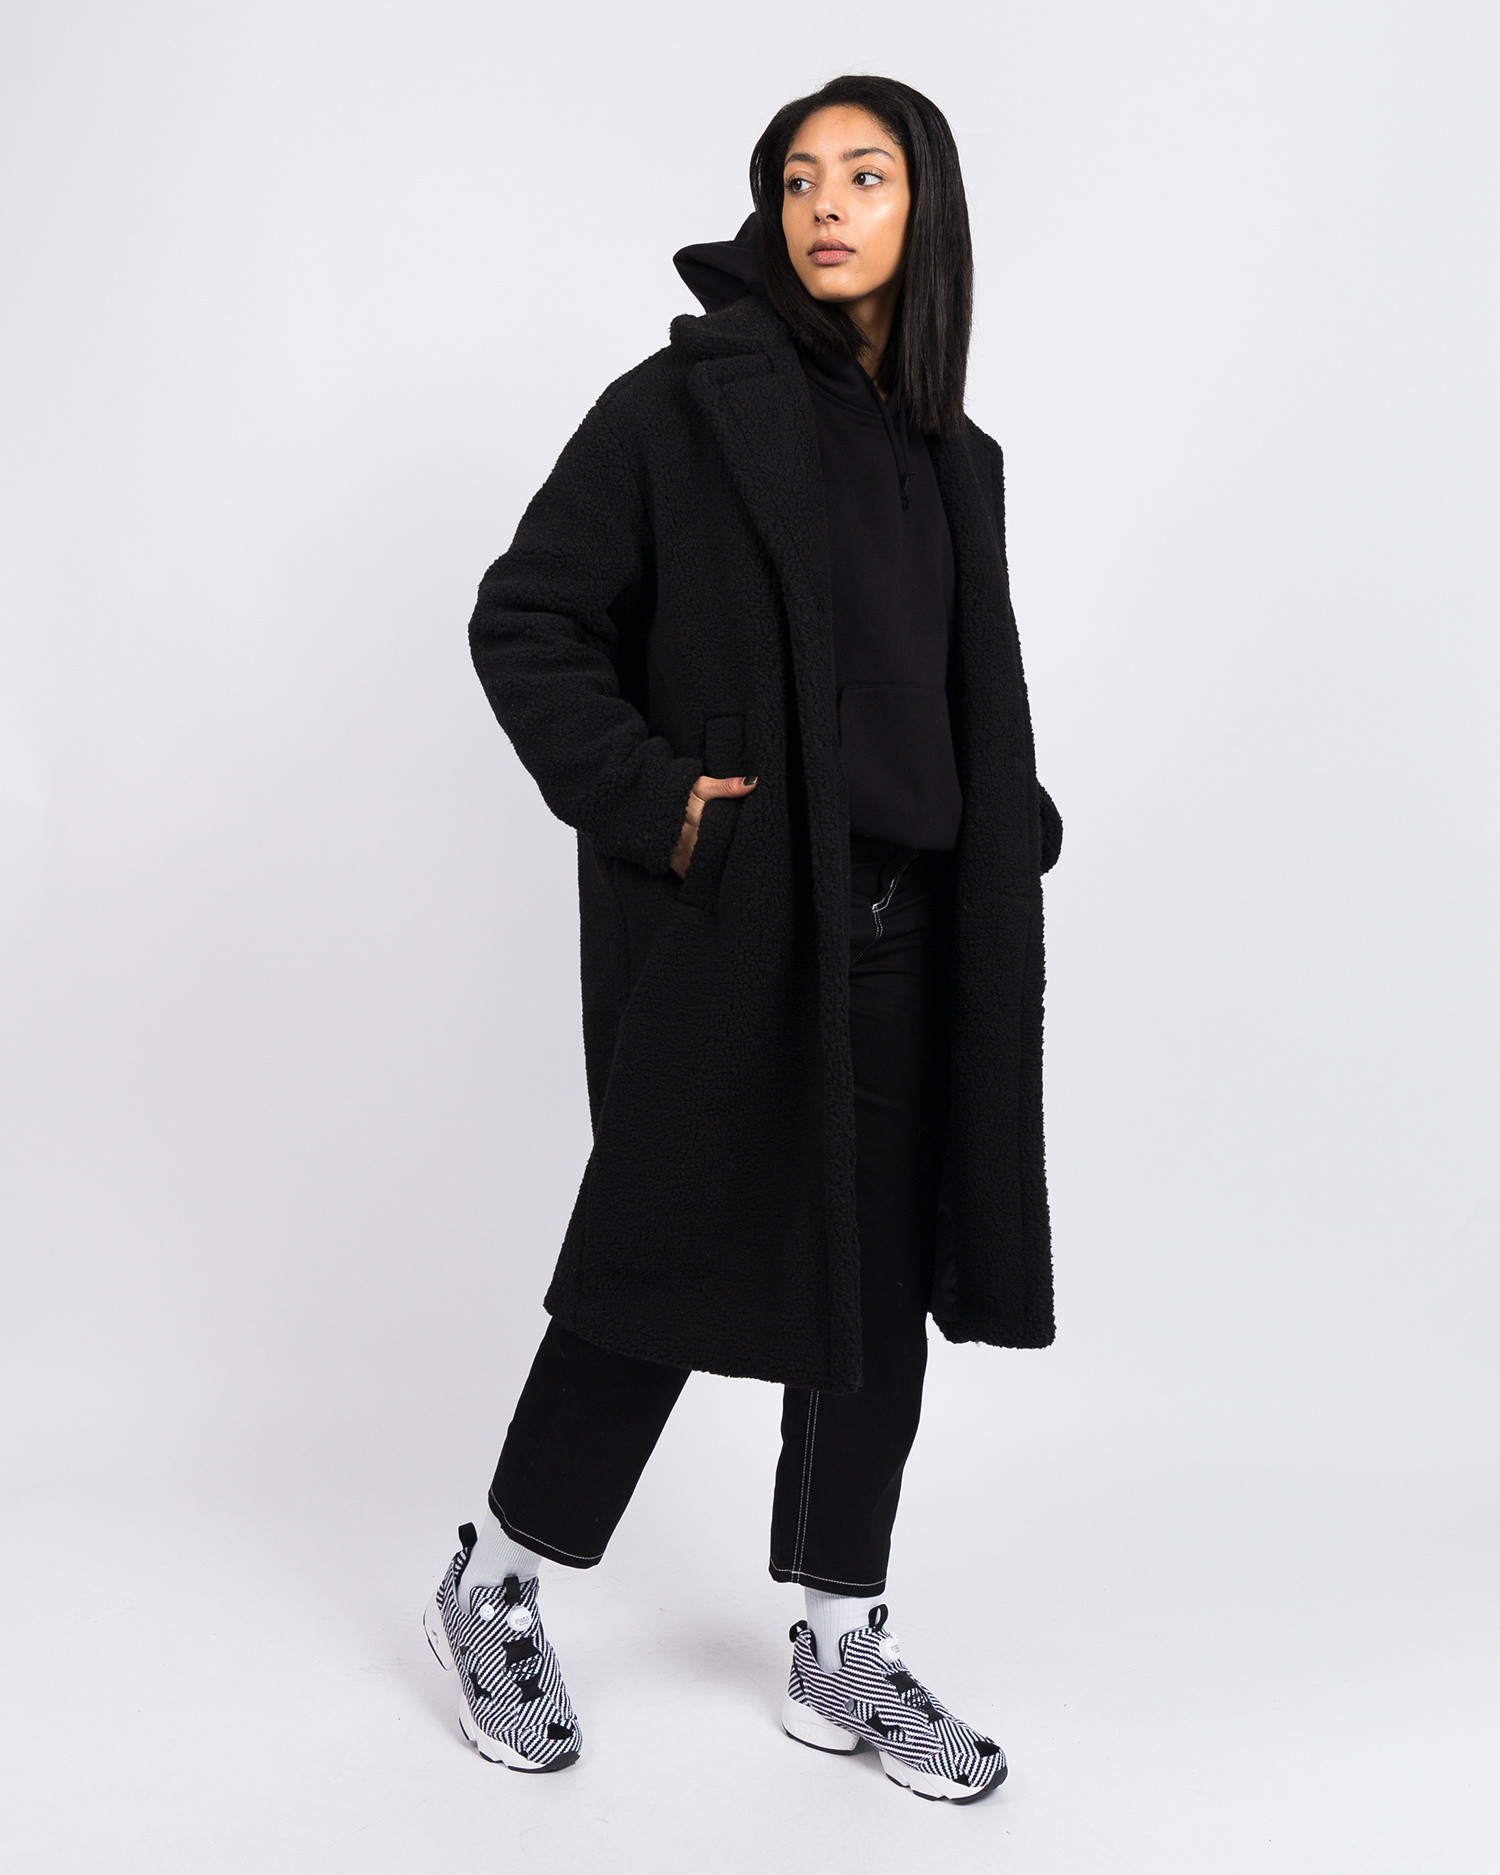 Carhartt Women's Jaxon Coat Black